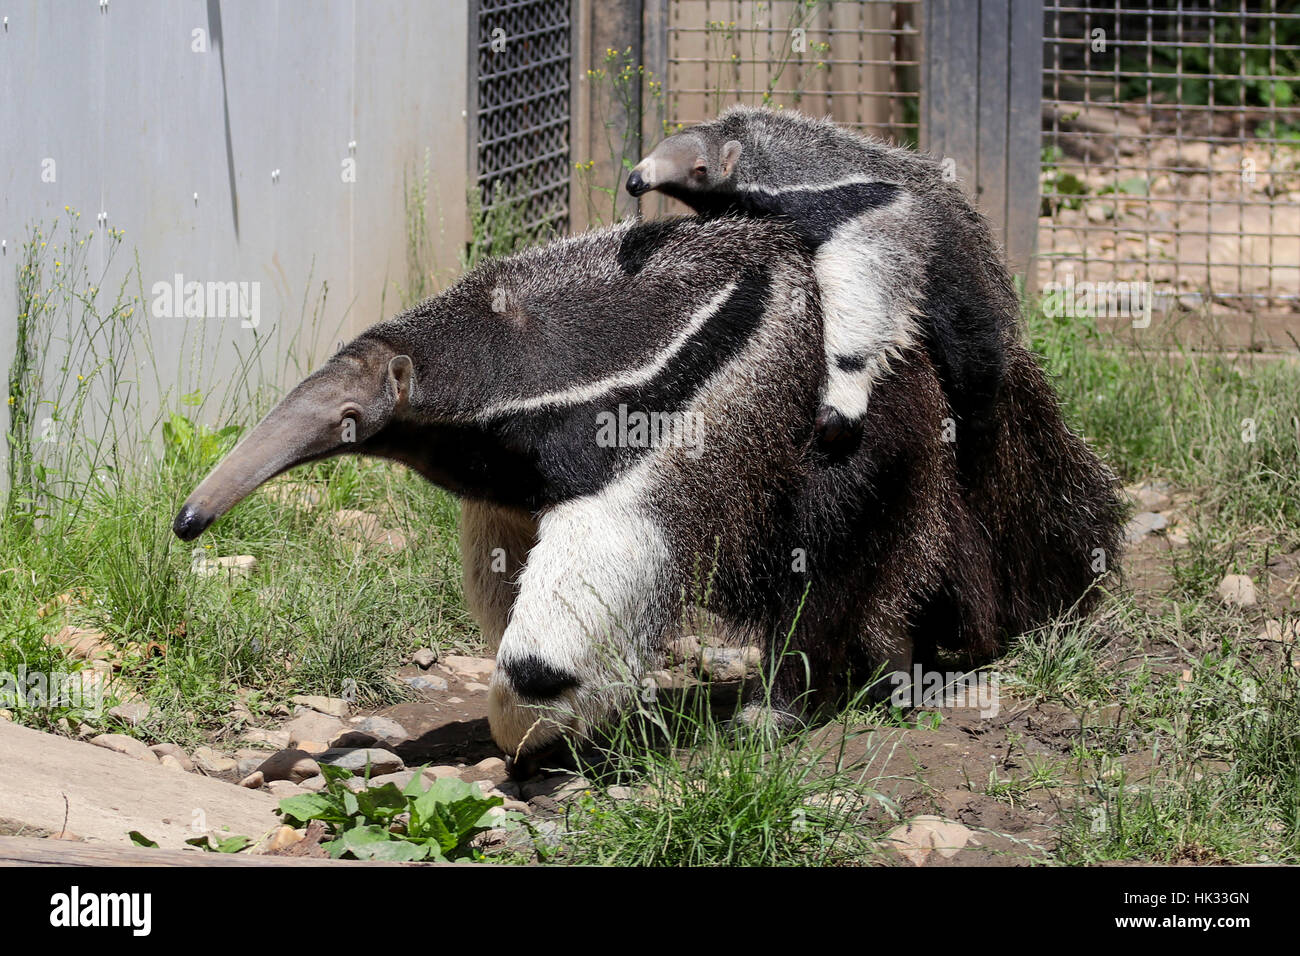 Stock Photo - Giant Anteater carrying a baby at the back searching for food (Myrmecophaga Tridactyla) - Stock Image